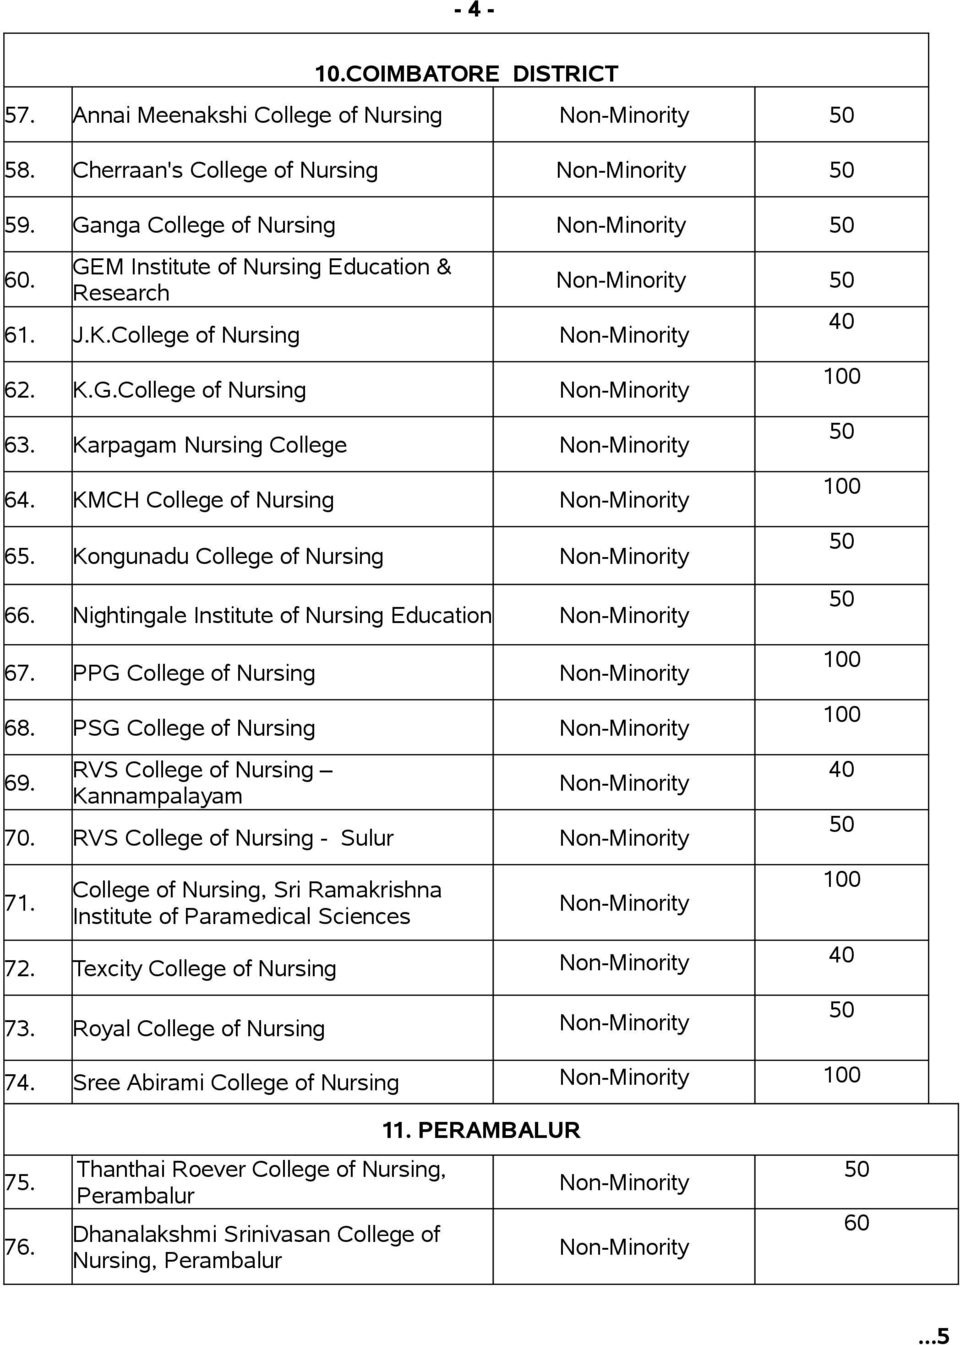 PPG College of Nursing 68. PSG College of Nursing 69. RVS College of Nursing Kannampalayam 70. RVS College of Nursing - Sulur 71.